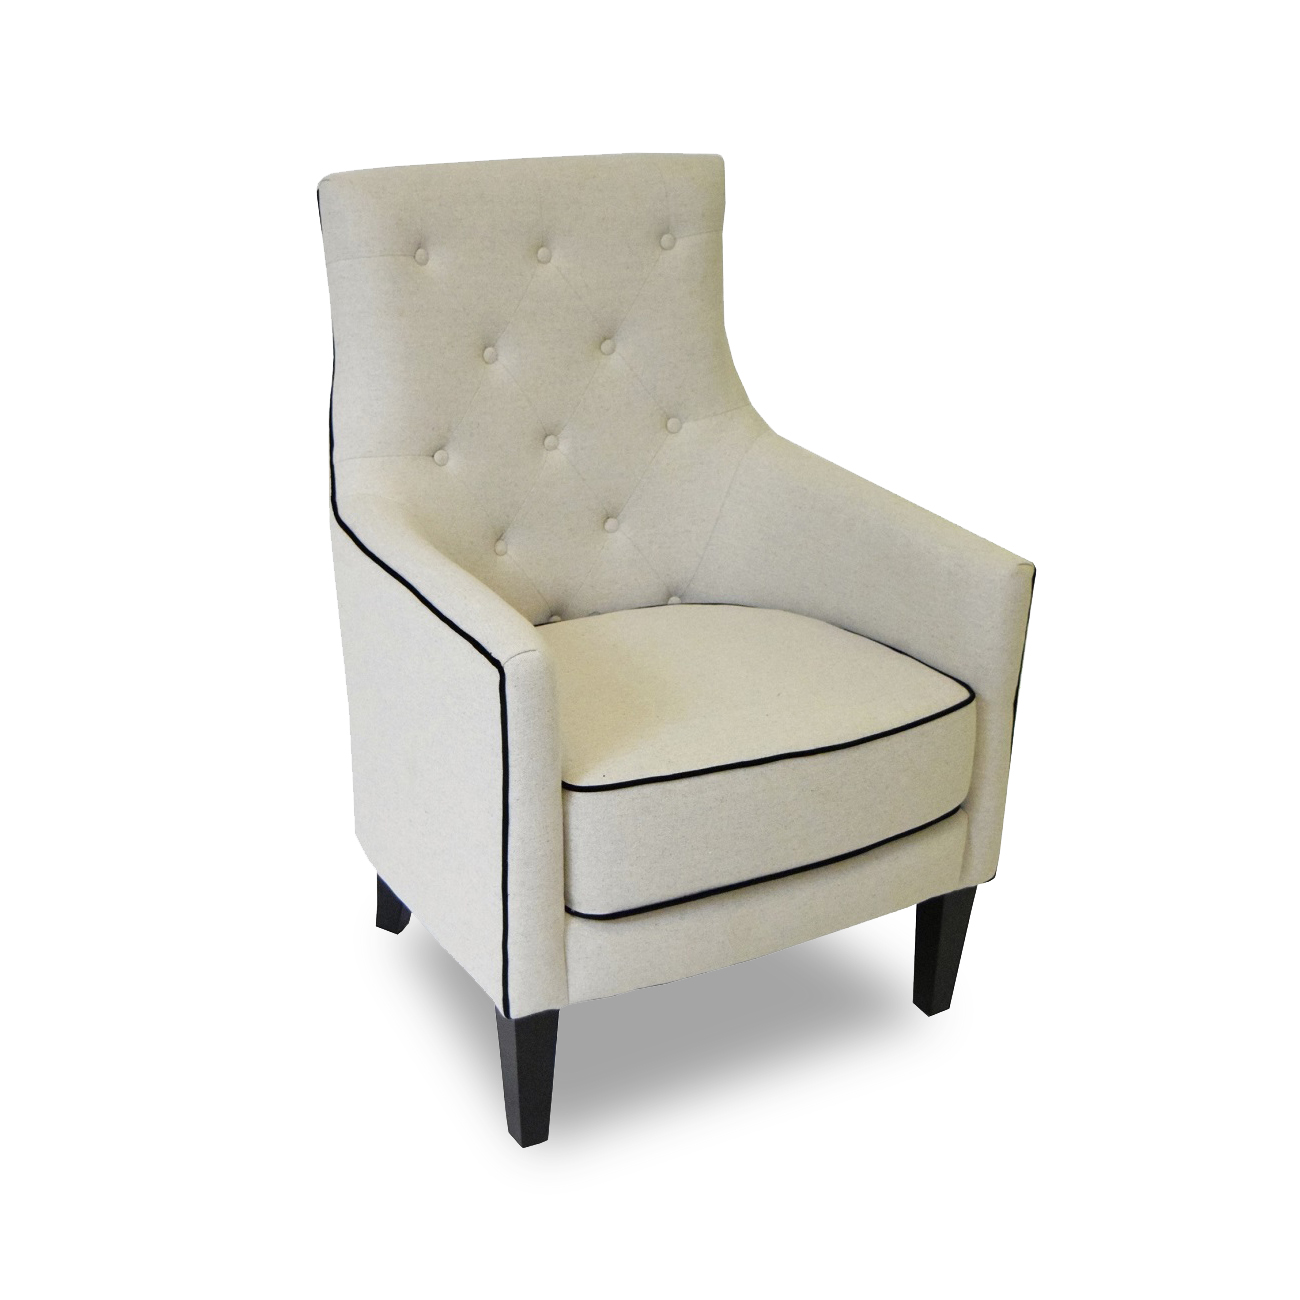 Modern Armchairs For Sale, 948166 Arm Chair